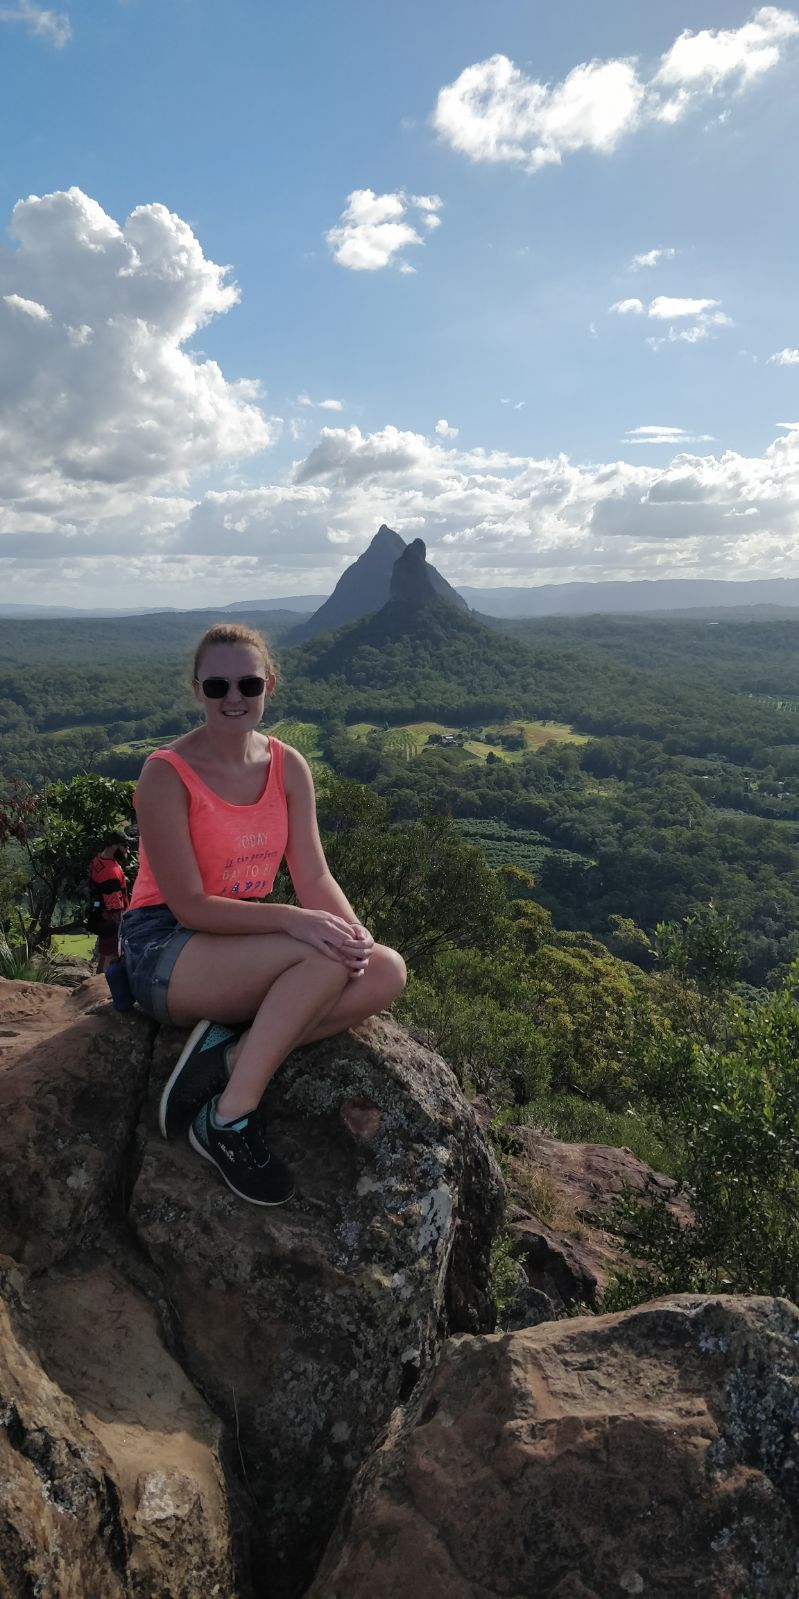 Rebecca Burke in the Glasshouse Mountains in Australia